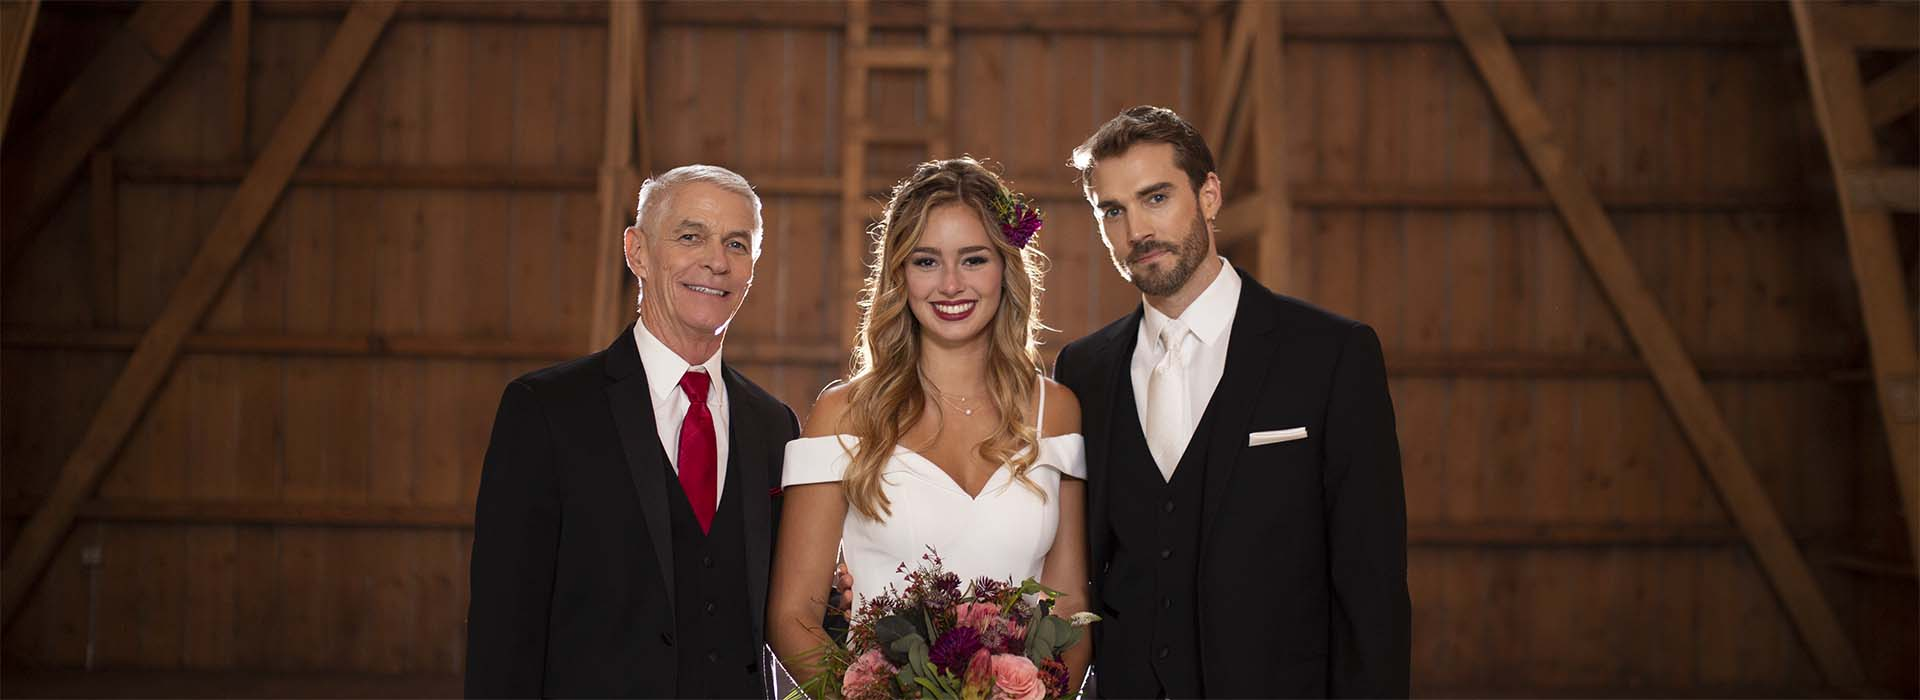 Bride with Groom and Father wearing black tuxedos